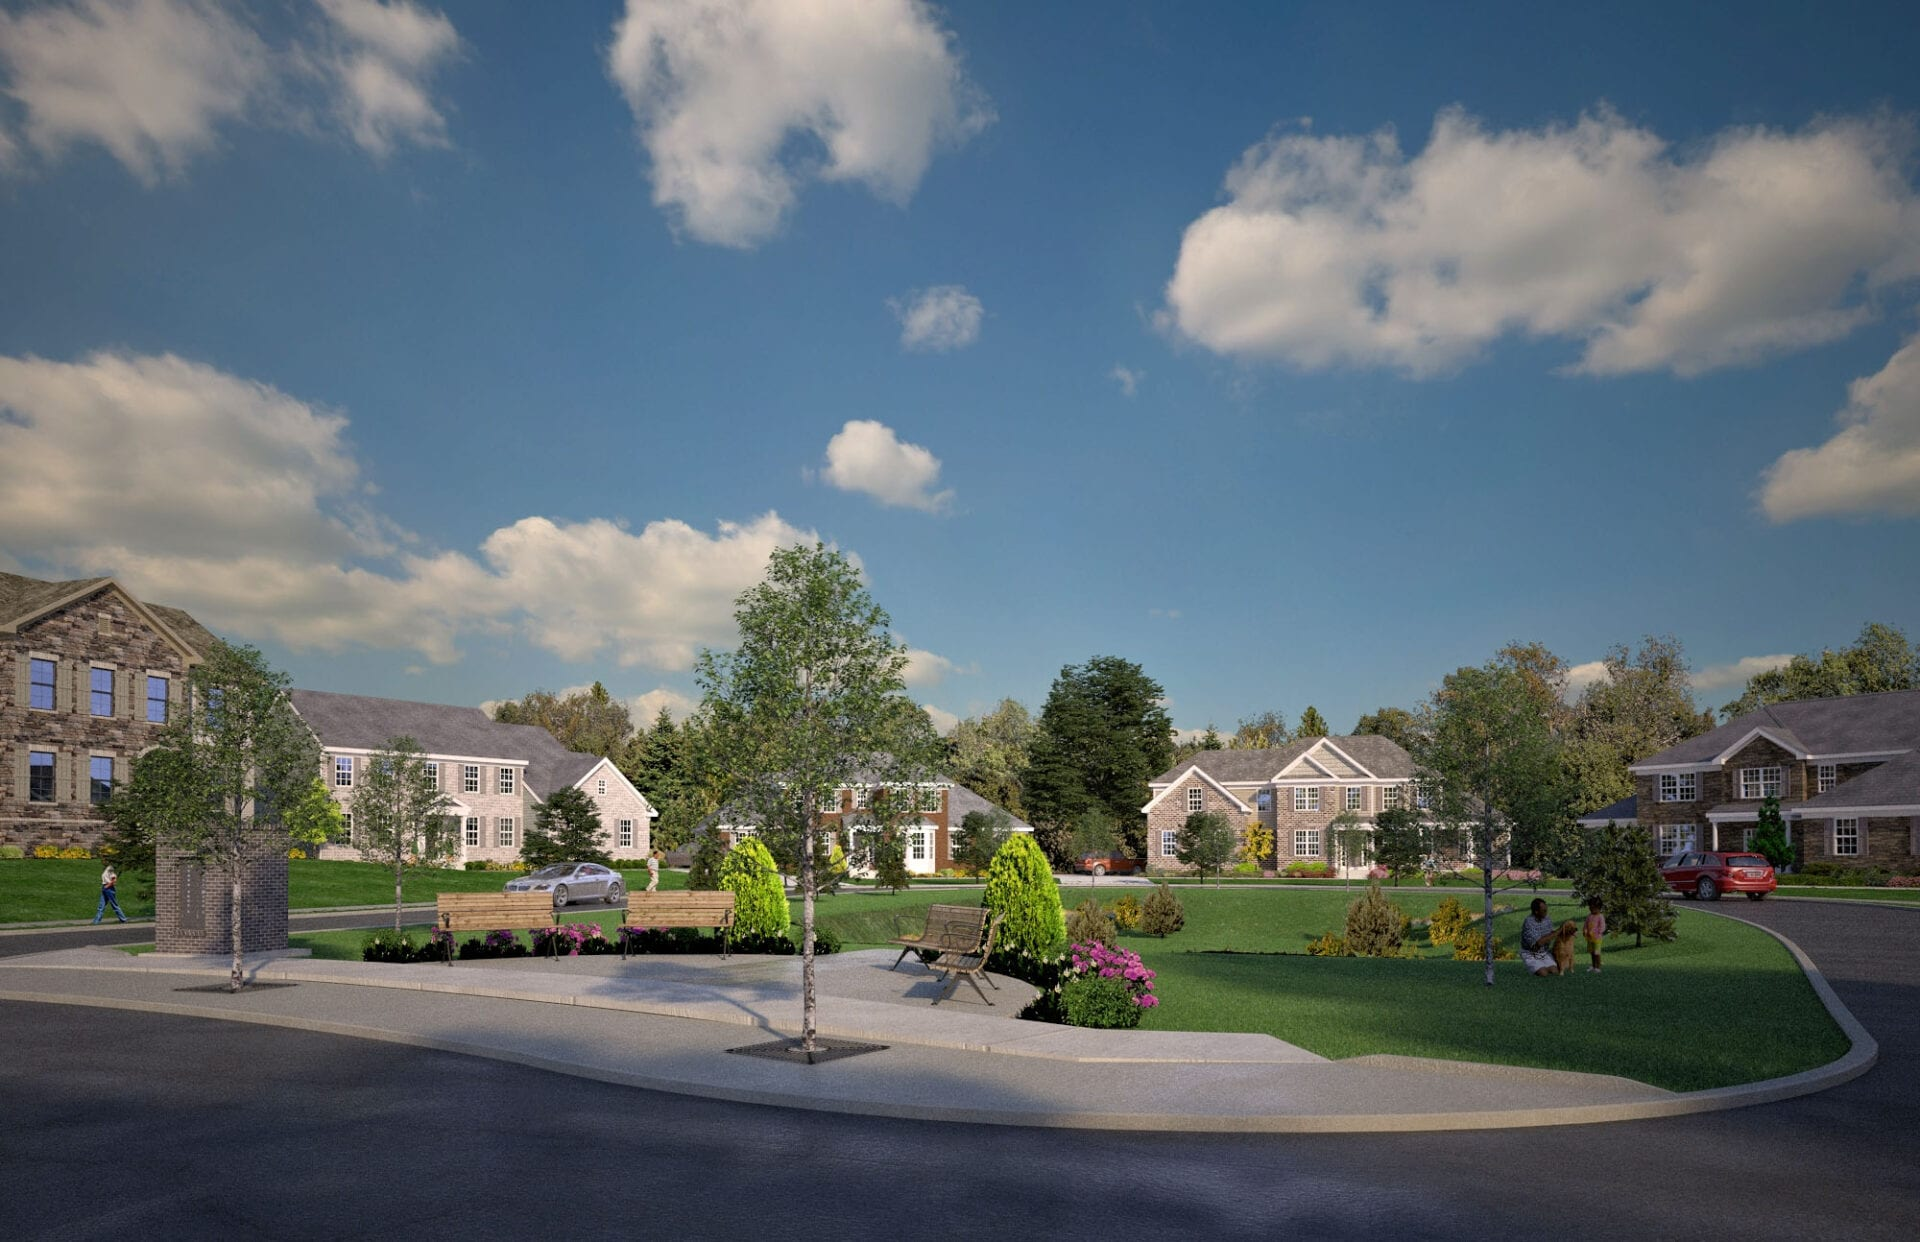 Dalamar Homes presents one of their newest and most luxurious new home communities